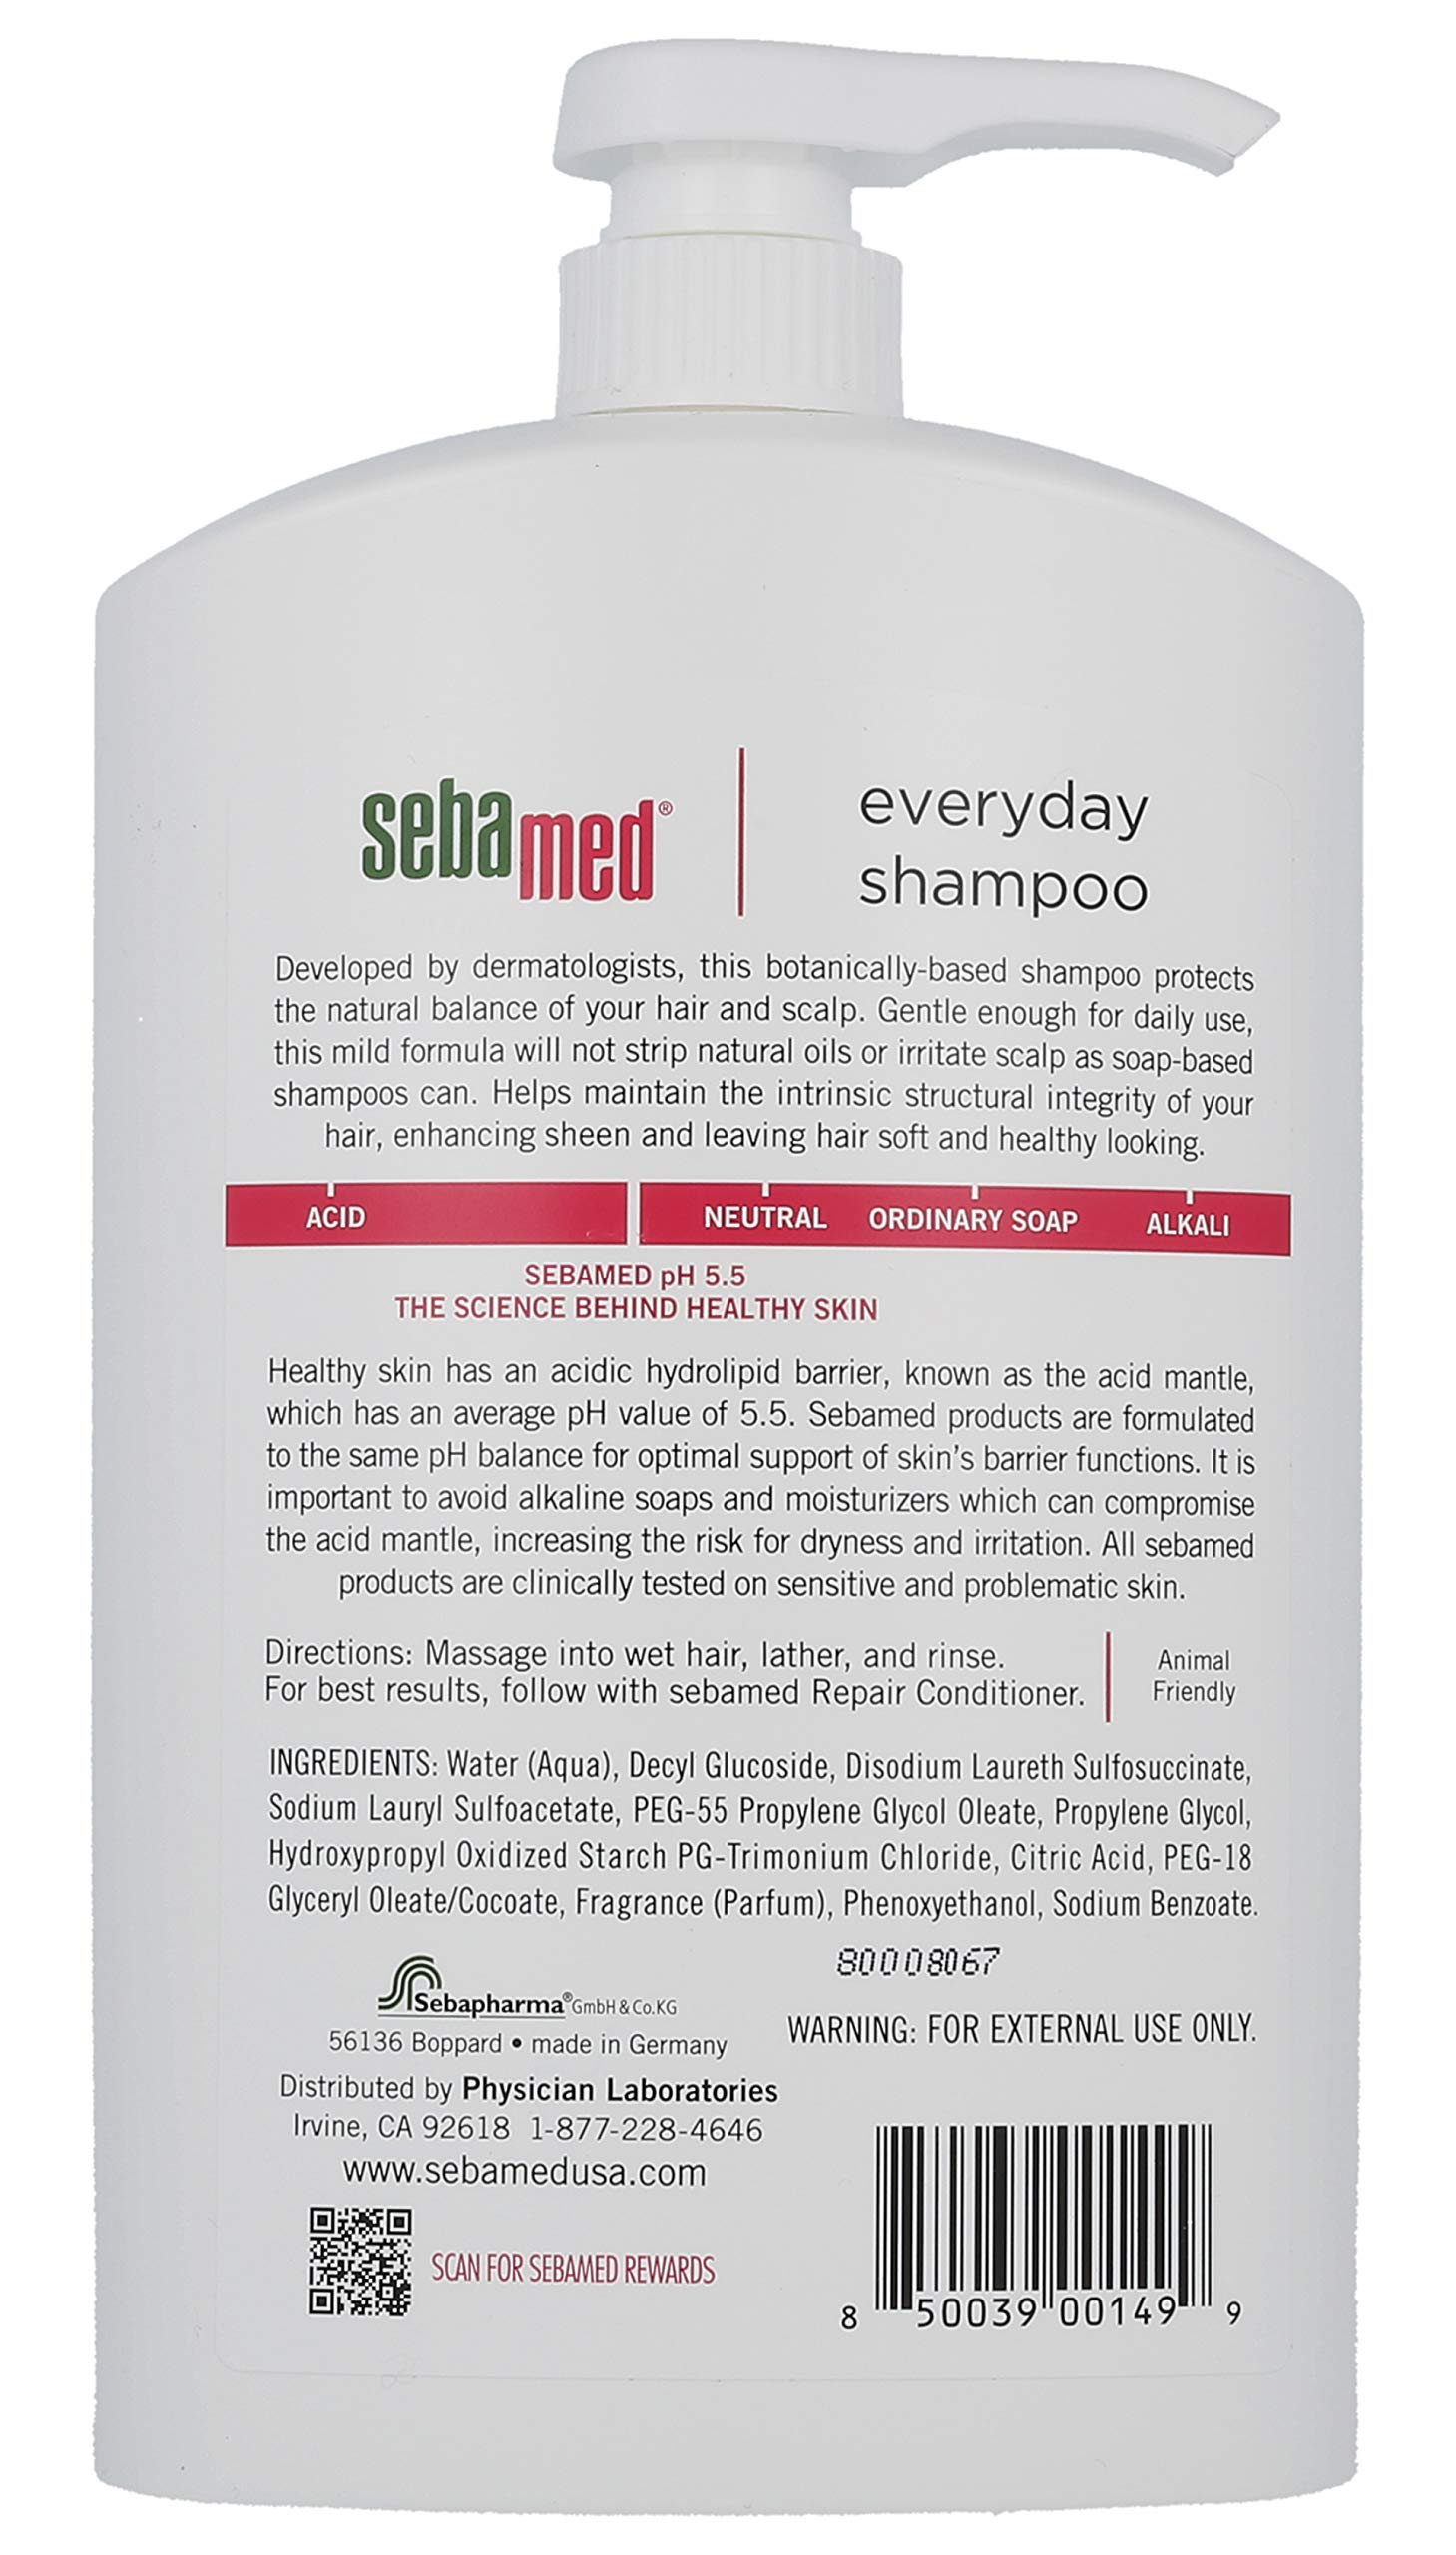 Sebamed Everyday Shampoo for All Hair Types and Sensitive Scalp 33.8 Fl. Oz (1L) Hypoallergenic Dermatologist Recommended pH 5.5 Soap and Alkali Free by SEBAMED (Image #2)